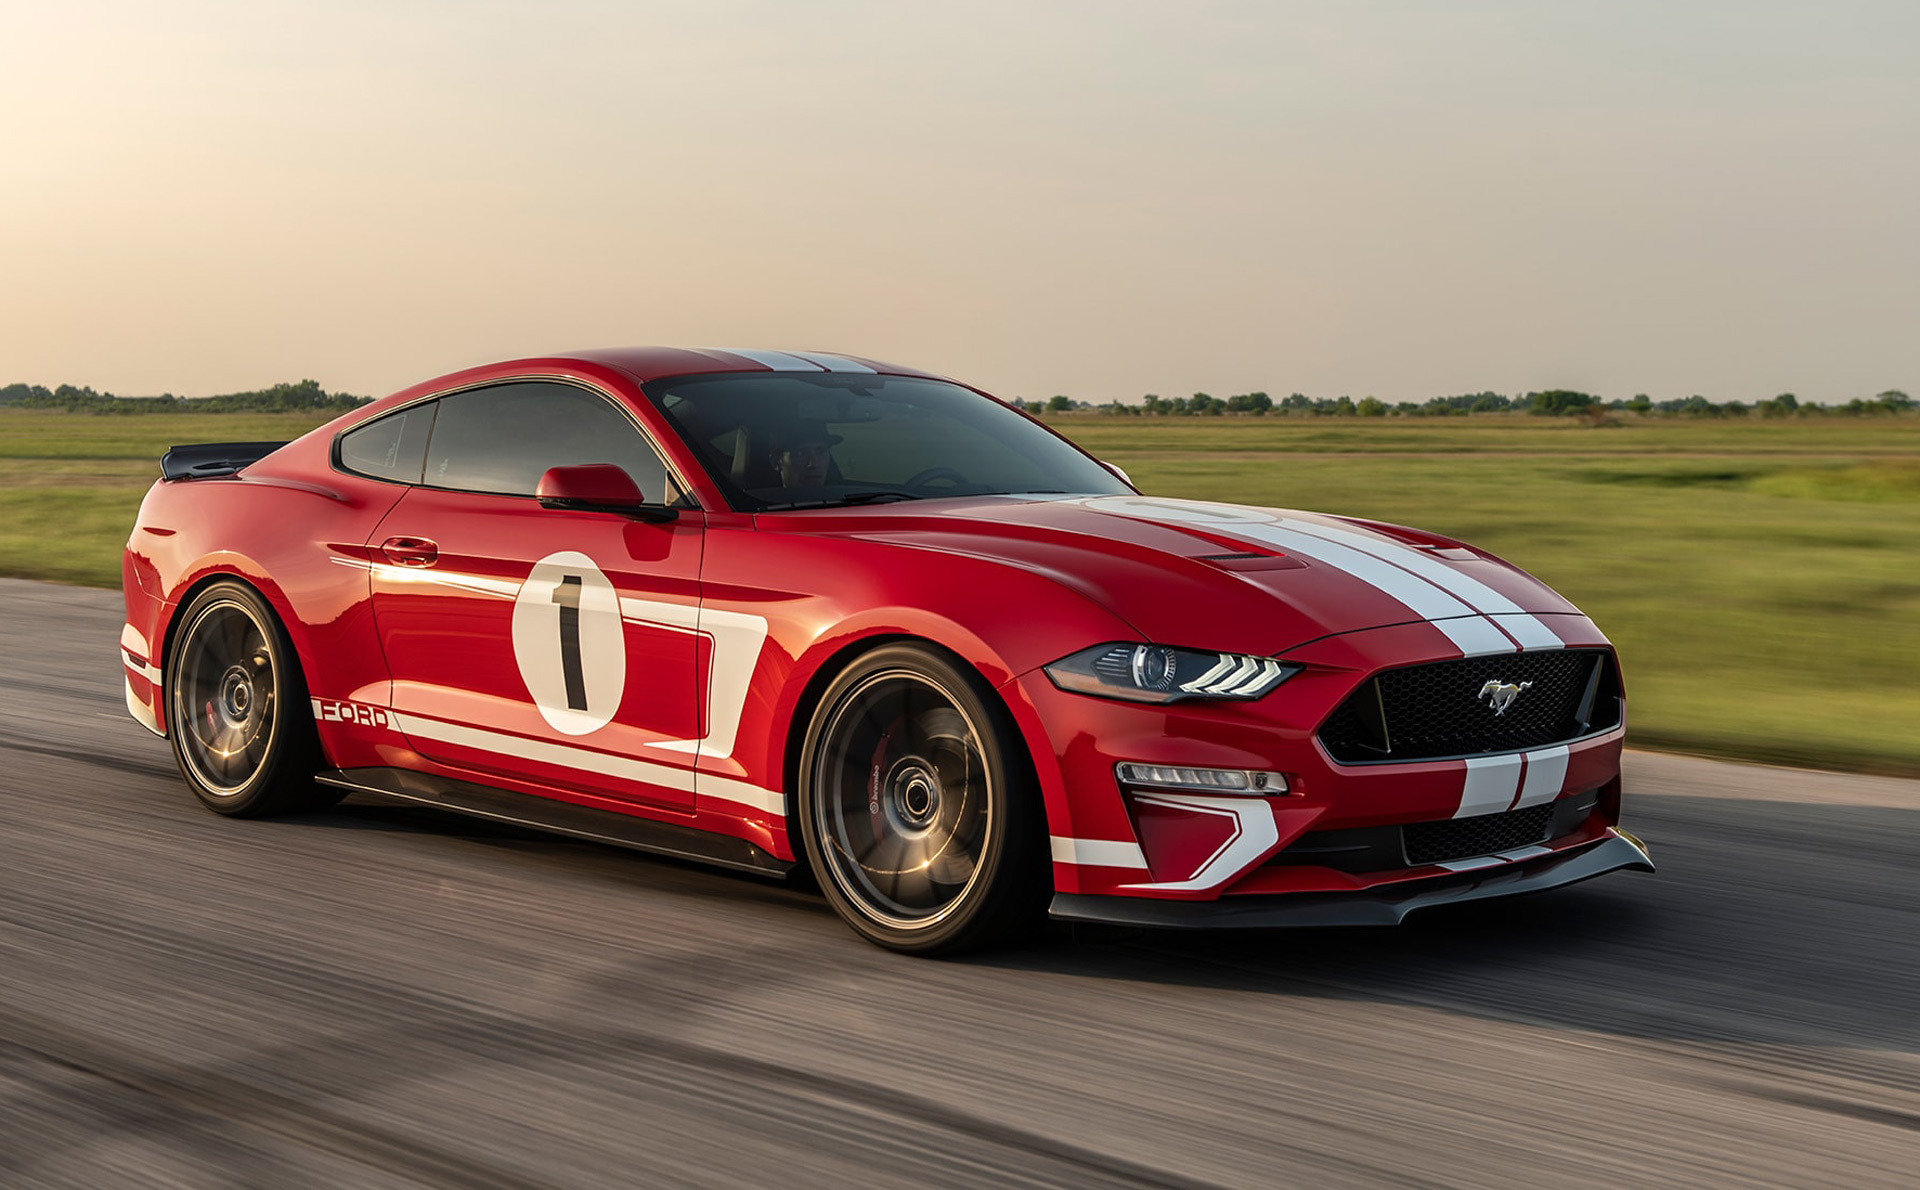 Hennesseys 10000th car is an 808 horsepower ford mustang